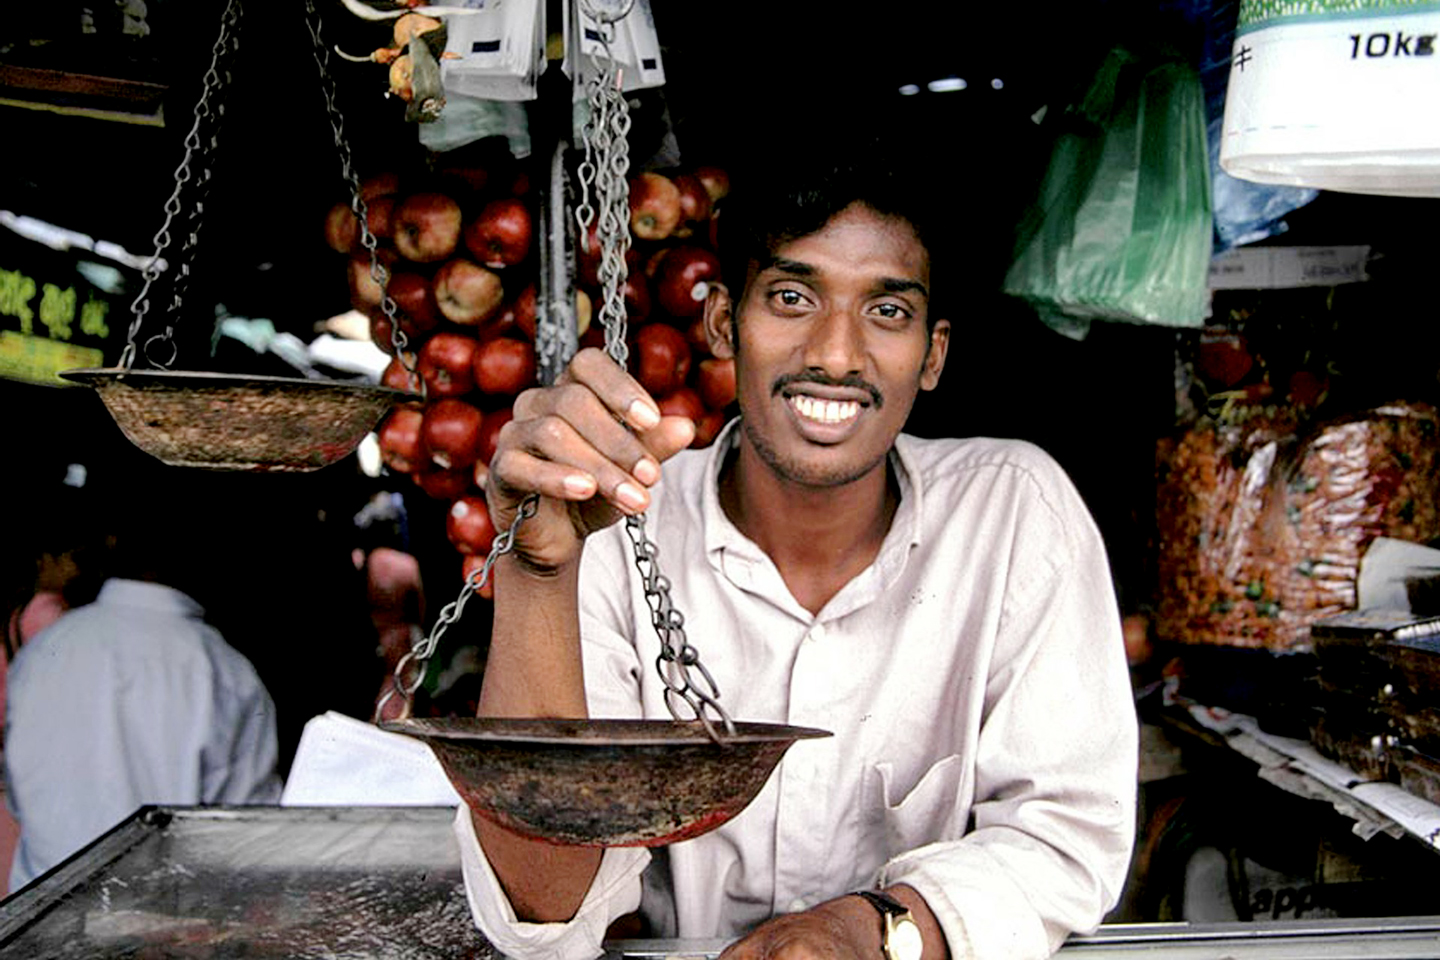 Shopkeeper smiling, Sri Lanka